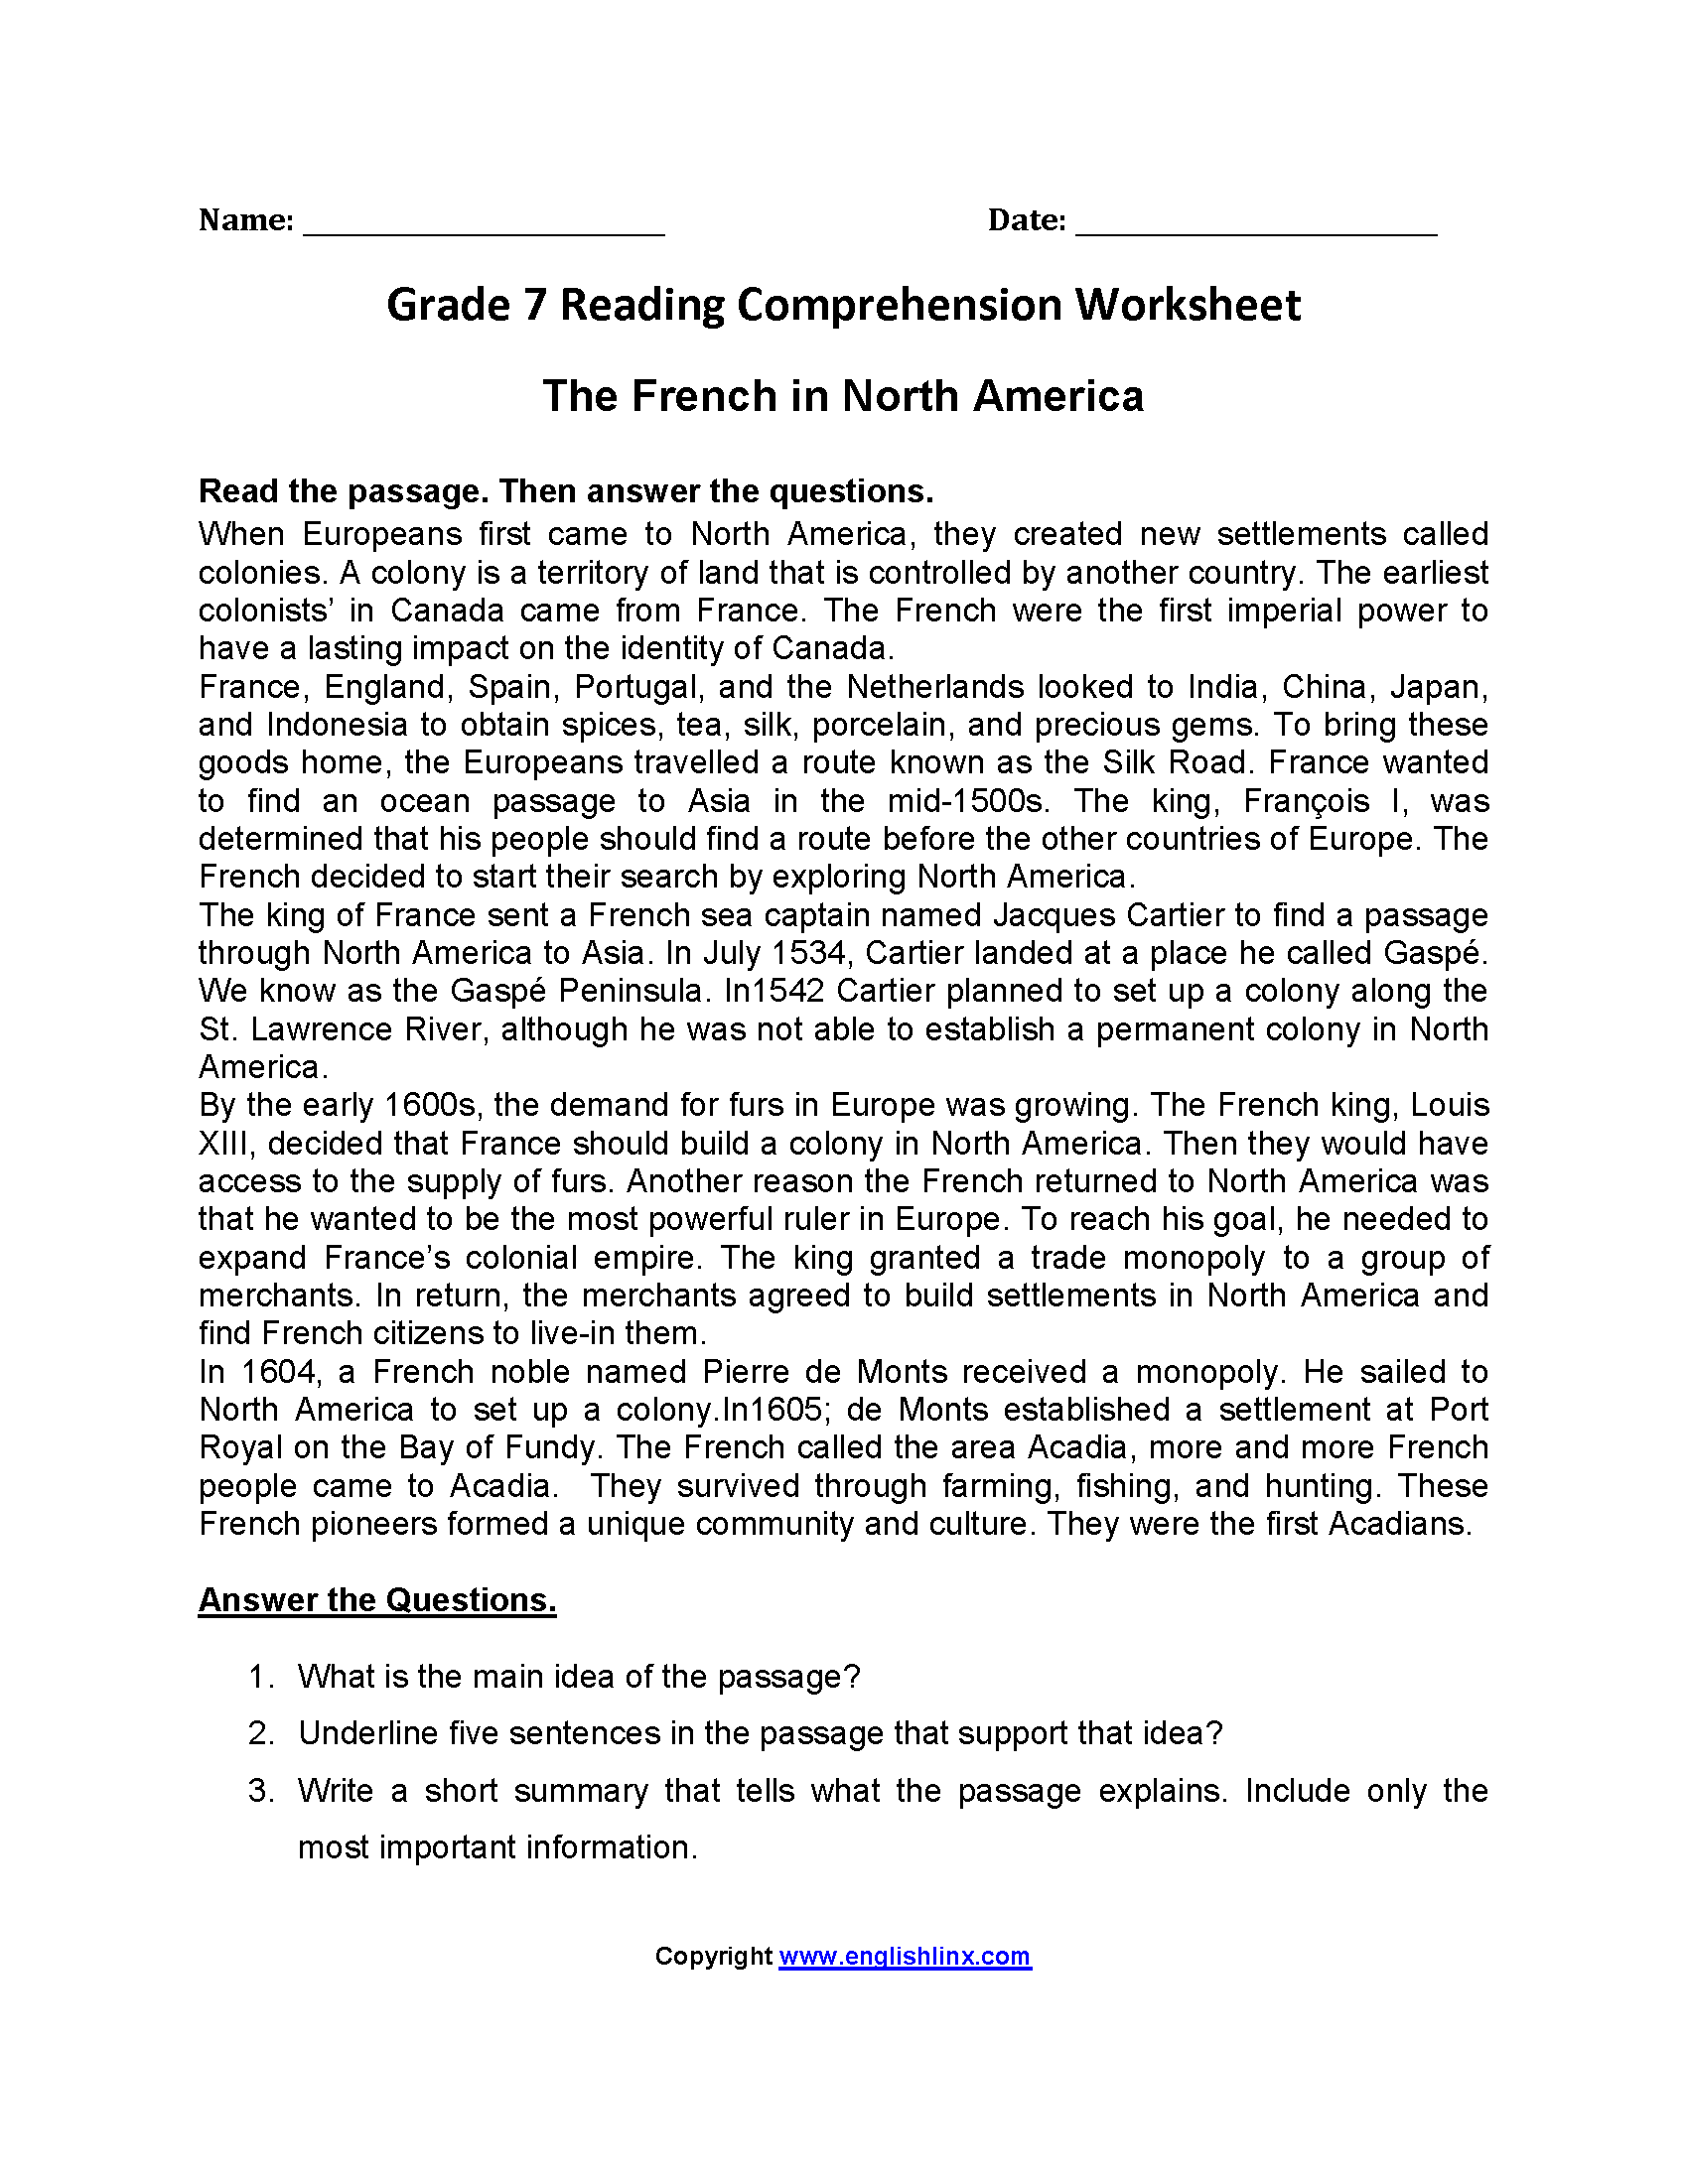 Worksheets French Reading Comprehension Worksheets reading worksheets seventh grade french in north americaseventh worksheets